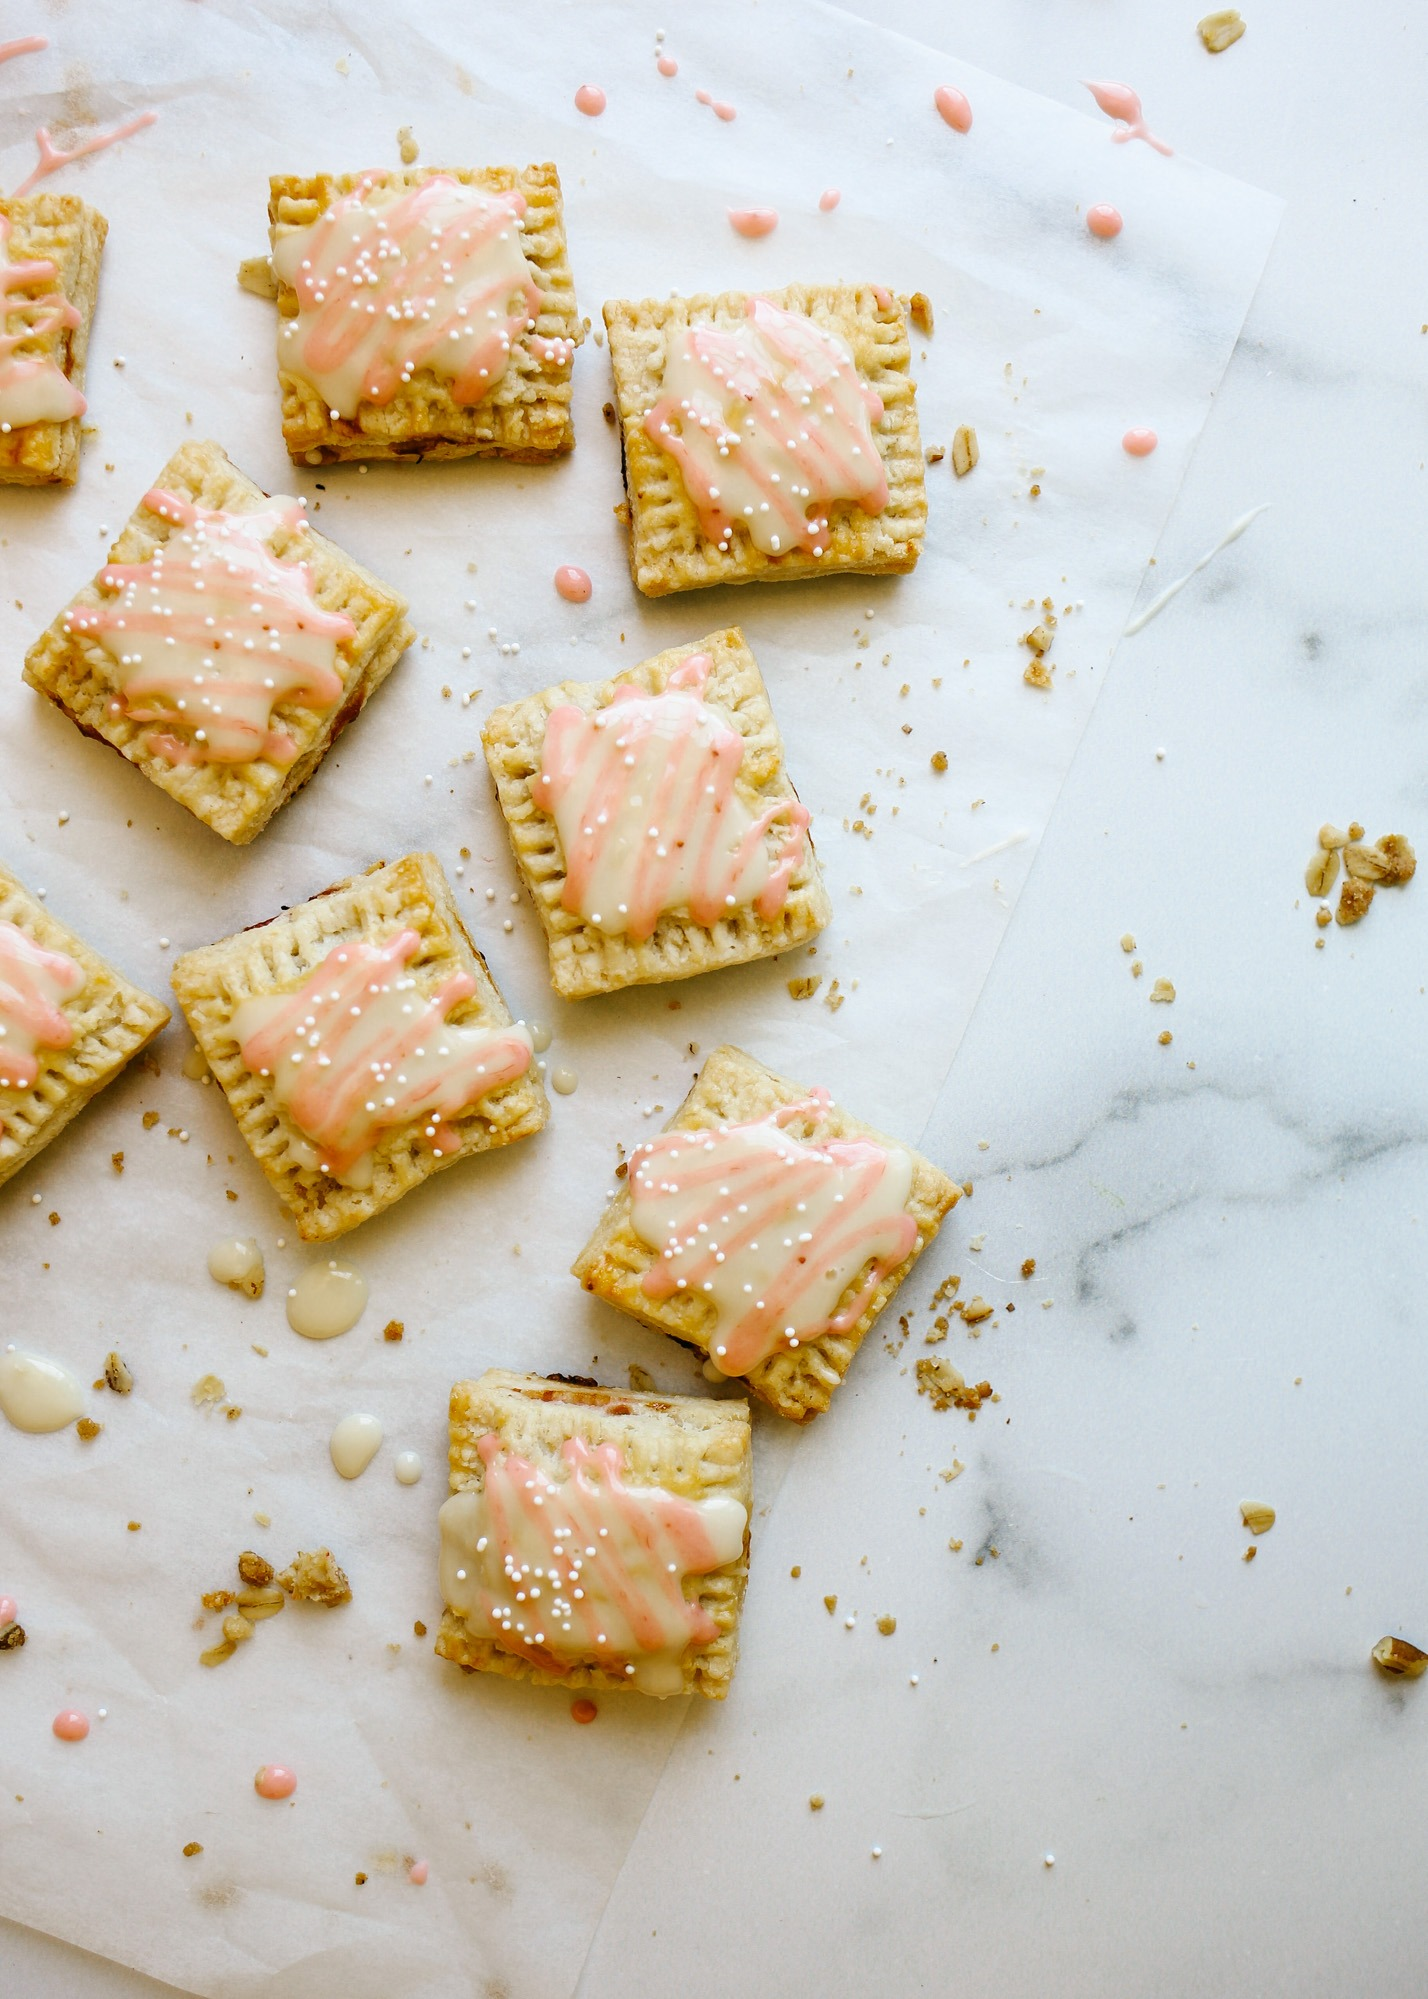 Rhubarb Pop-Tarts by Wood and Spoon blog. This recipe is for mini square hand pie breakfast pastries filled with a quite homemade rhubarb compote jam and a honey glaze icing. The hand pies can be made in advance and batches. These make fun morning treats or desserts. Learn how to DIY make from scratch pop-tarts here with simple pie dough and jelly on thewoodandspoon.com